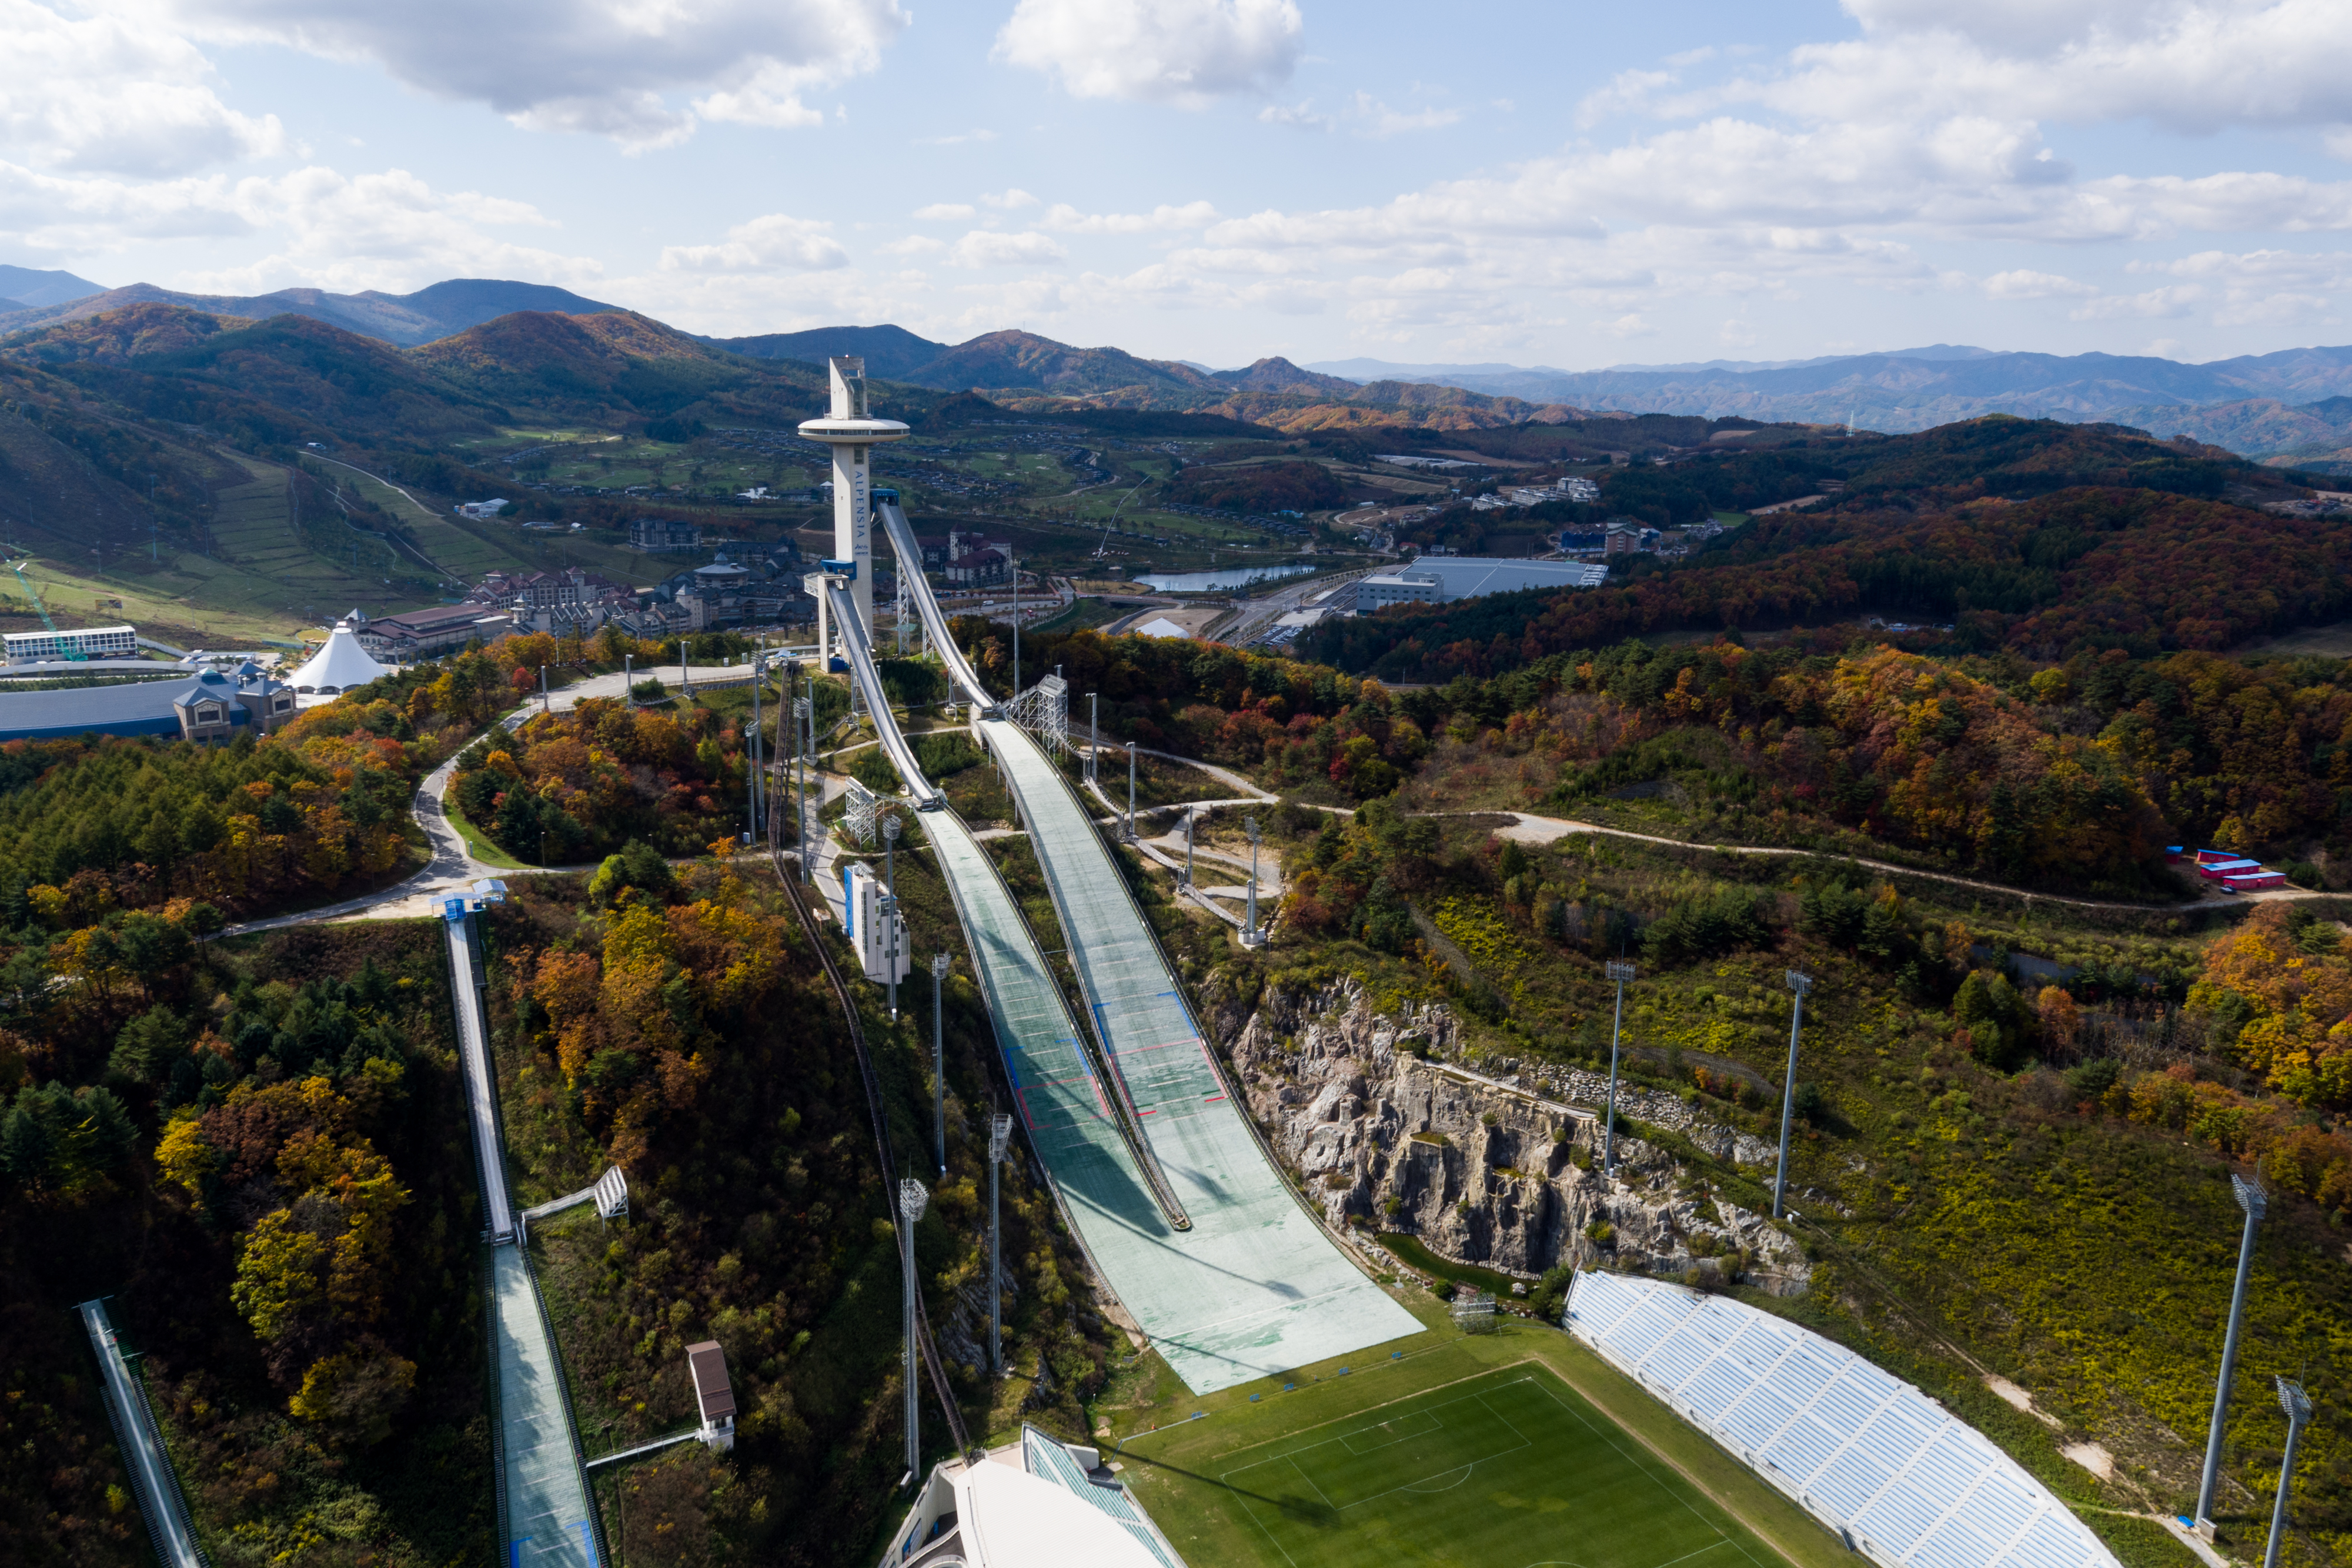 Hills stand at the Alpensia Ski Jumping Stadium, the venue for ski jumping events at the 2018 PyeongChang Winter Olympic Games.